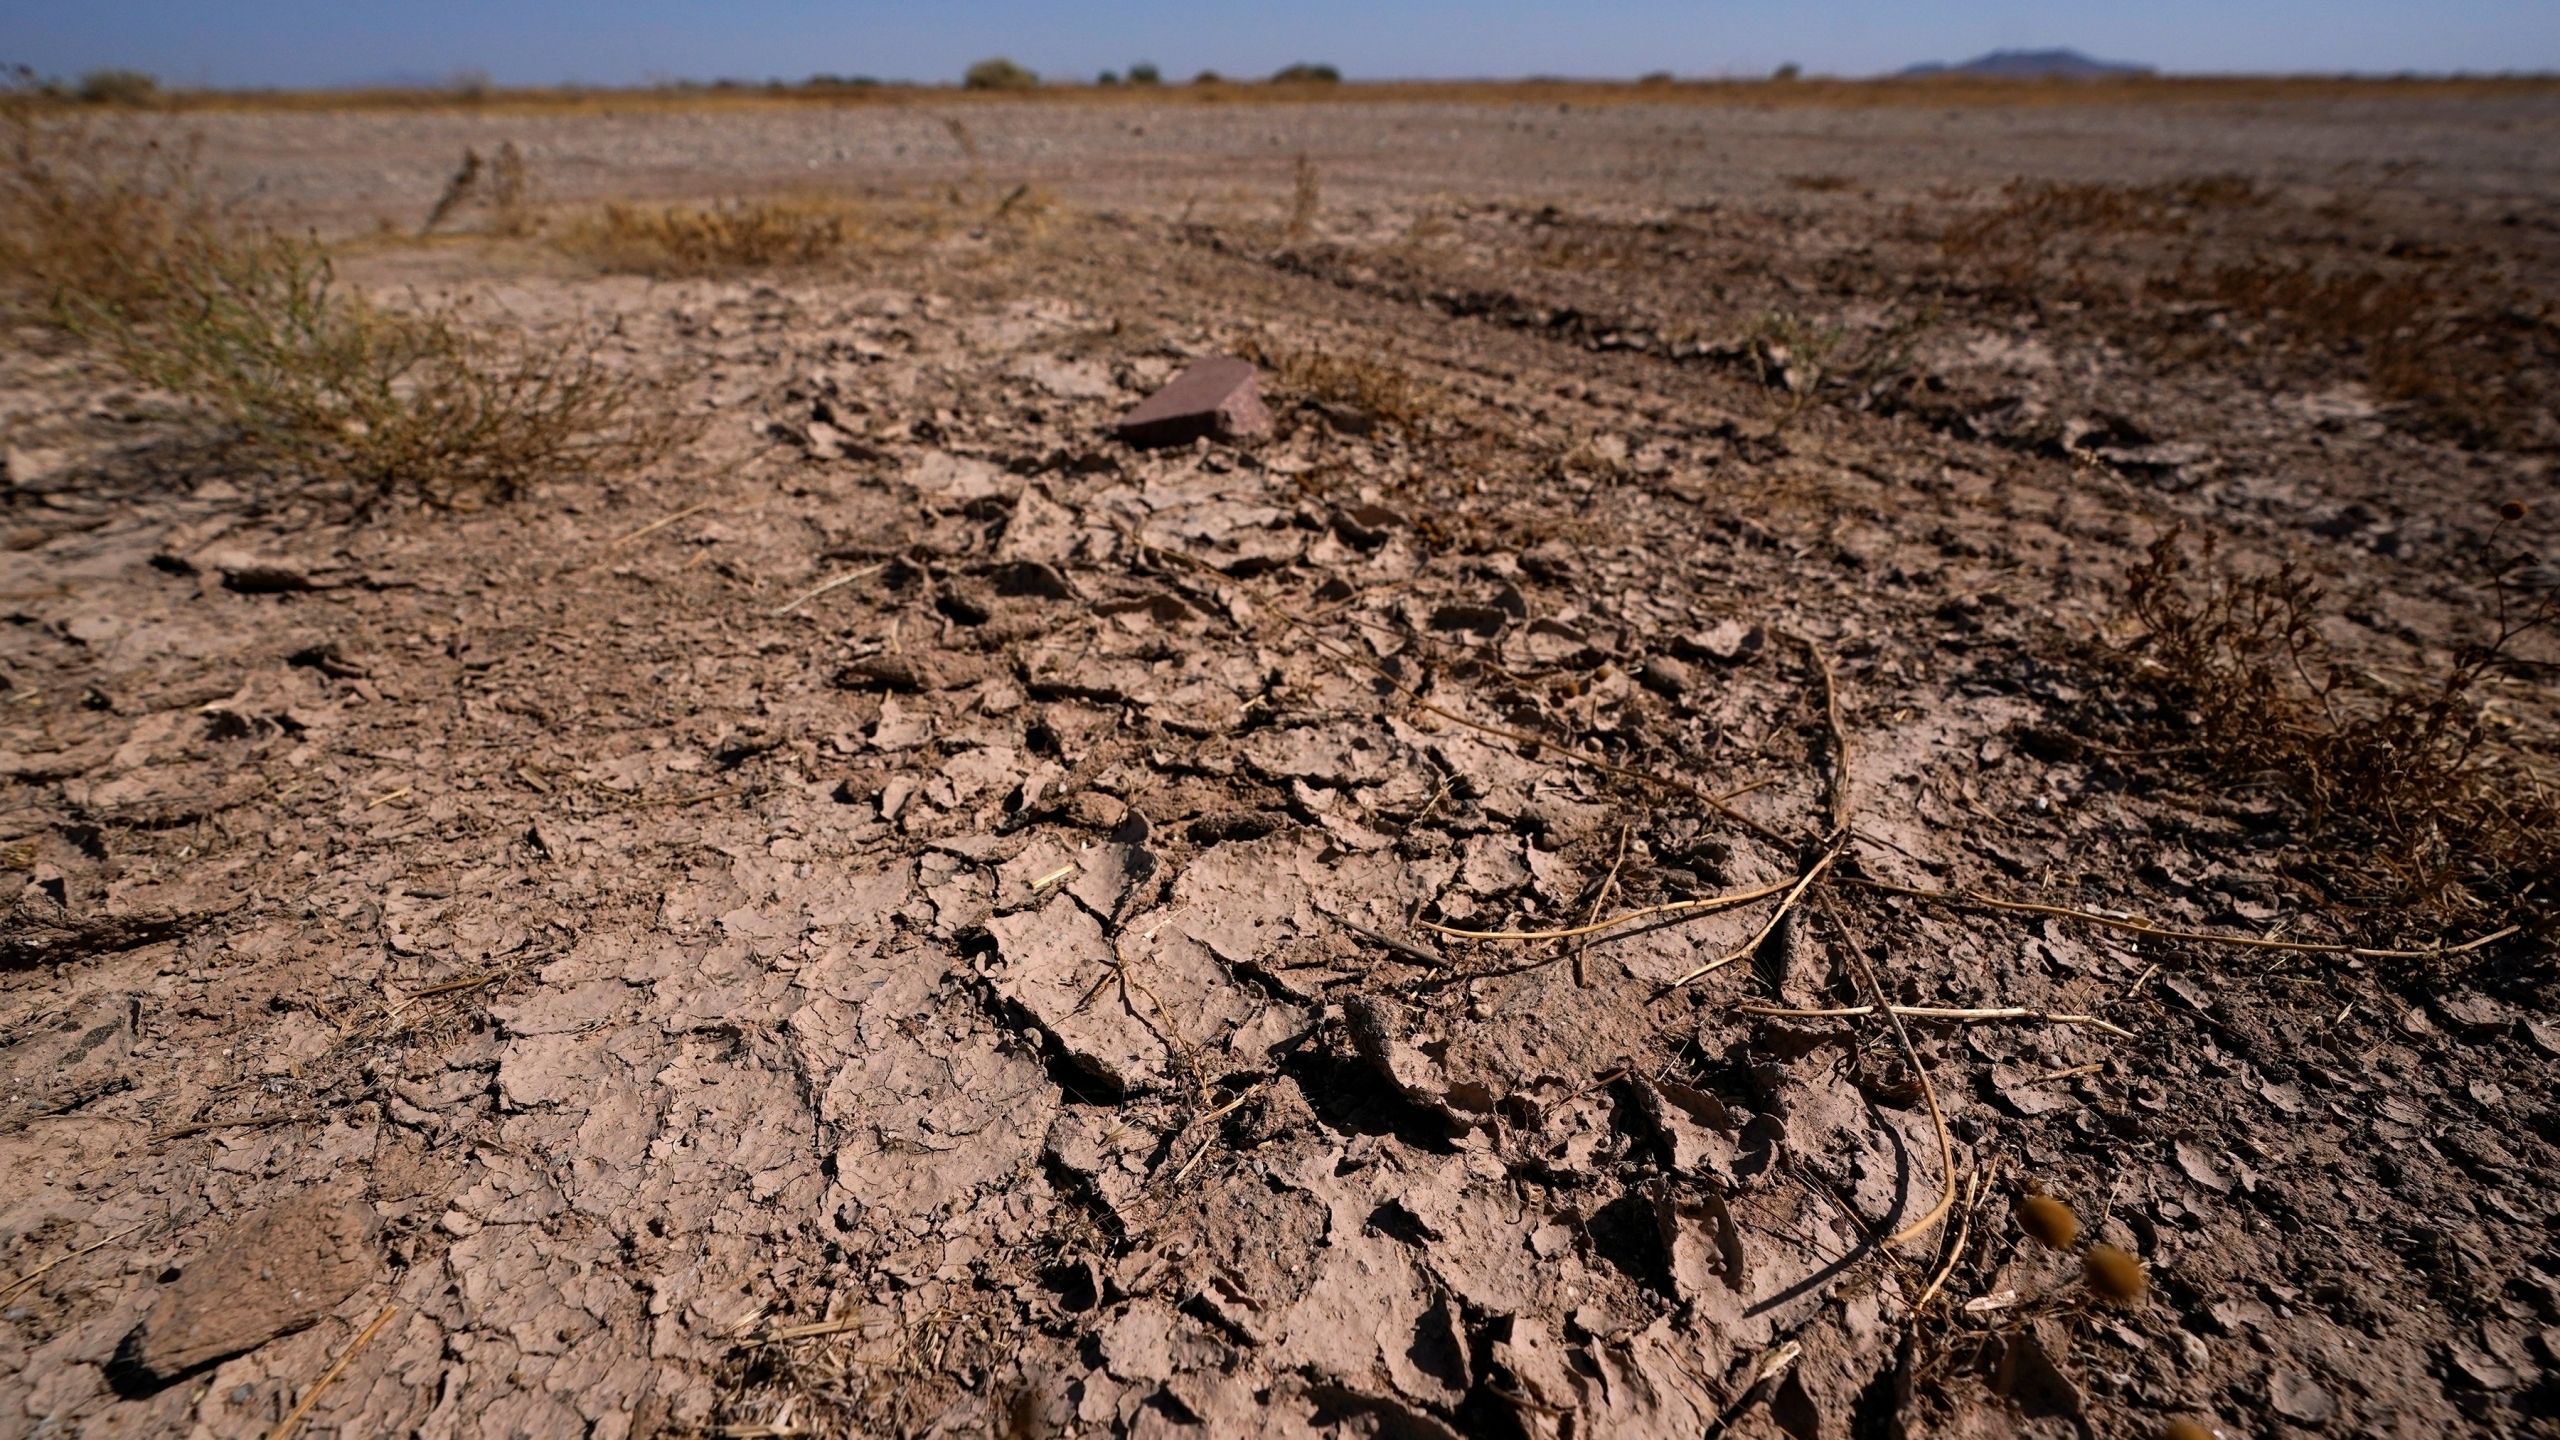 In this Wednesday, Sept. 30, 2020 file photo, dry desert soil cracks due to the lack of monsoon rainfall in Maricopa, Ariz. In a report released on Thursday, Oct. 15, 2020, National Oceanic and Atmospheric Administration forecasters see a dry winter for all of the south from coast-to-coast and say that could worsen an already bad drought. (AP Photo/Ross D. Franklin)